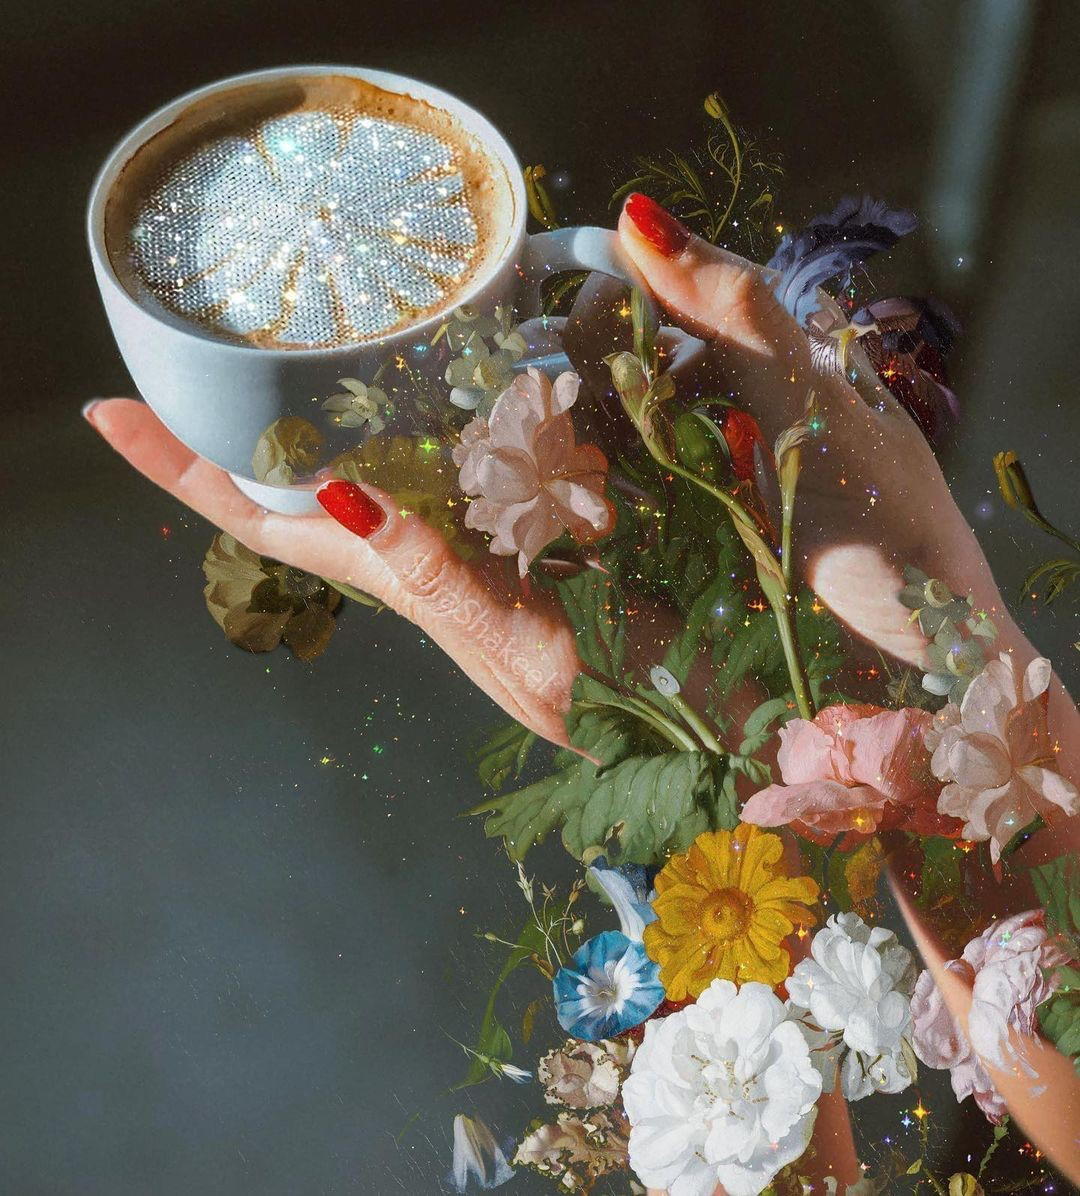 cup hands and flowers sparkling